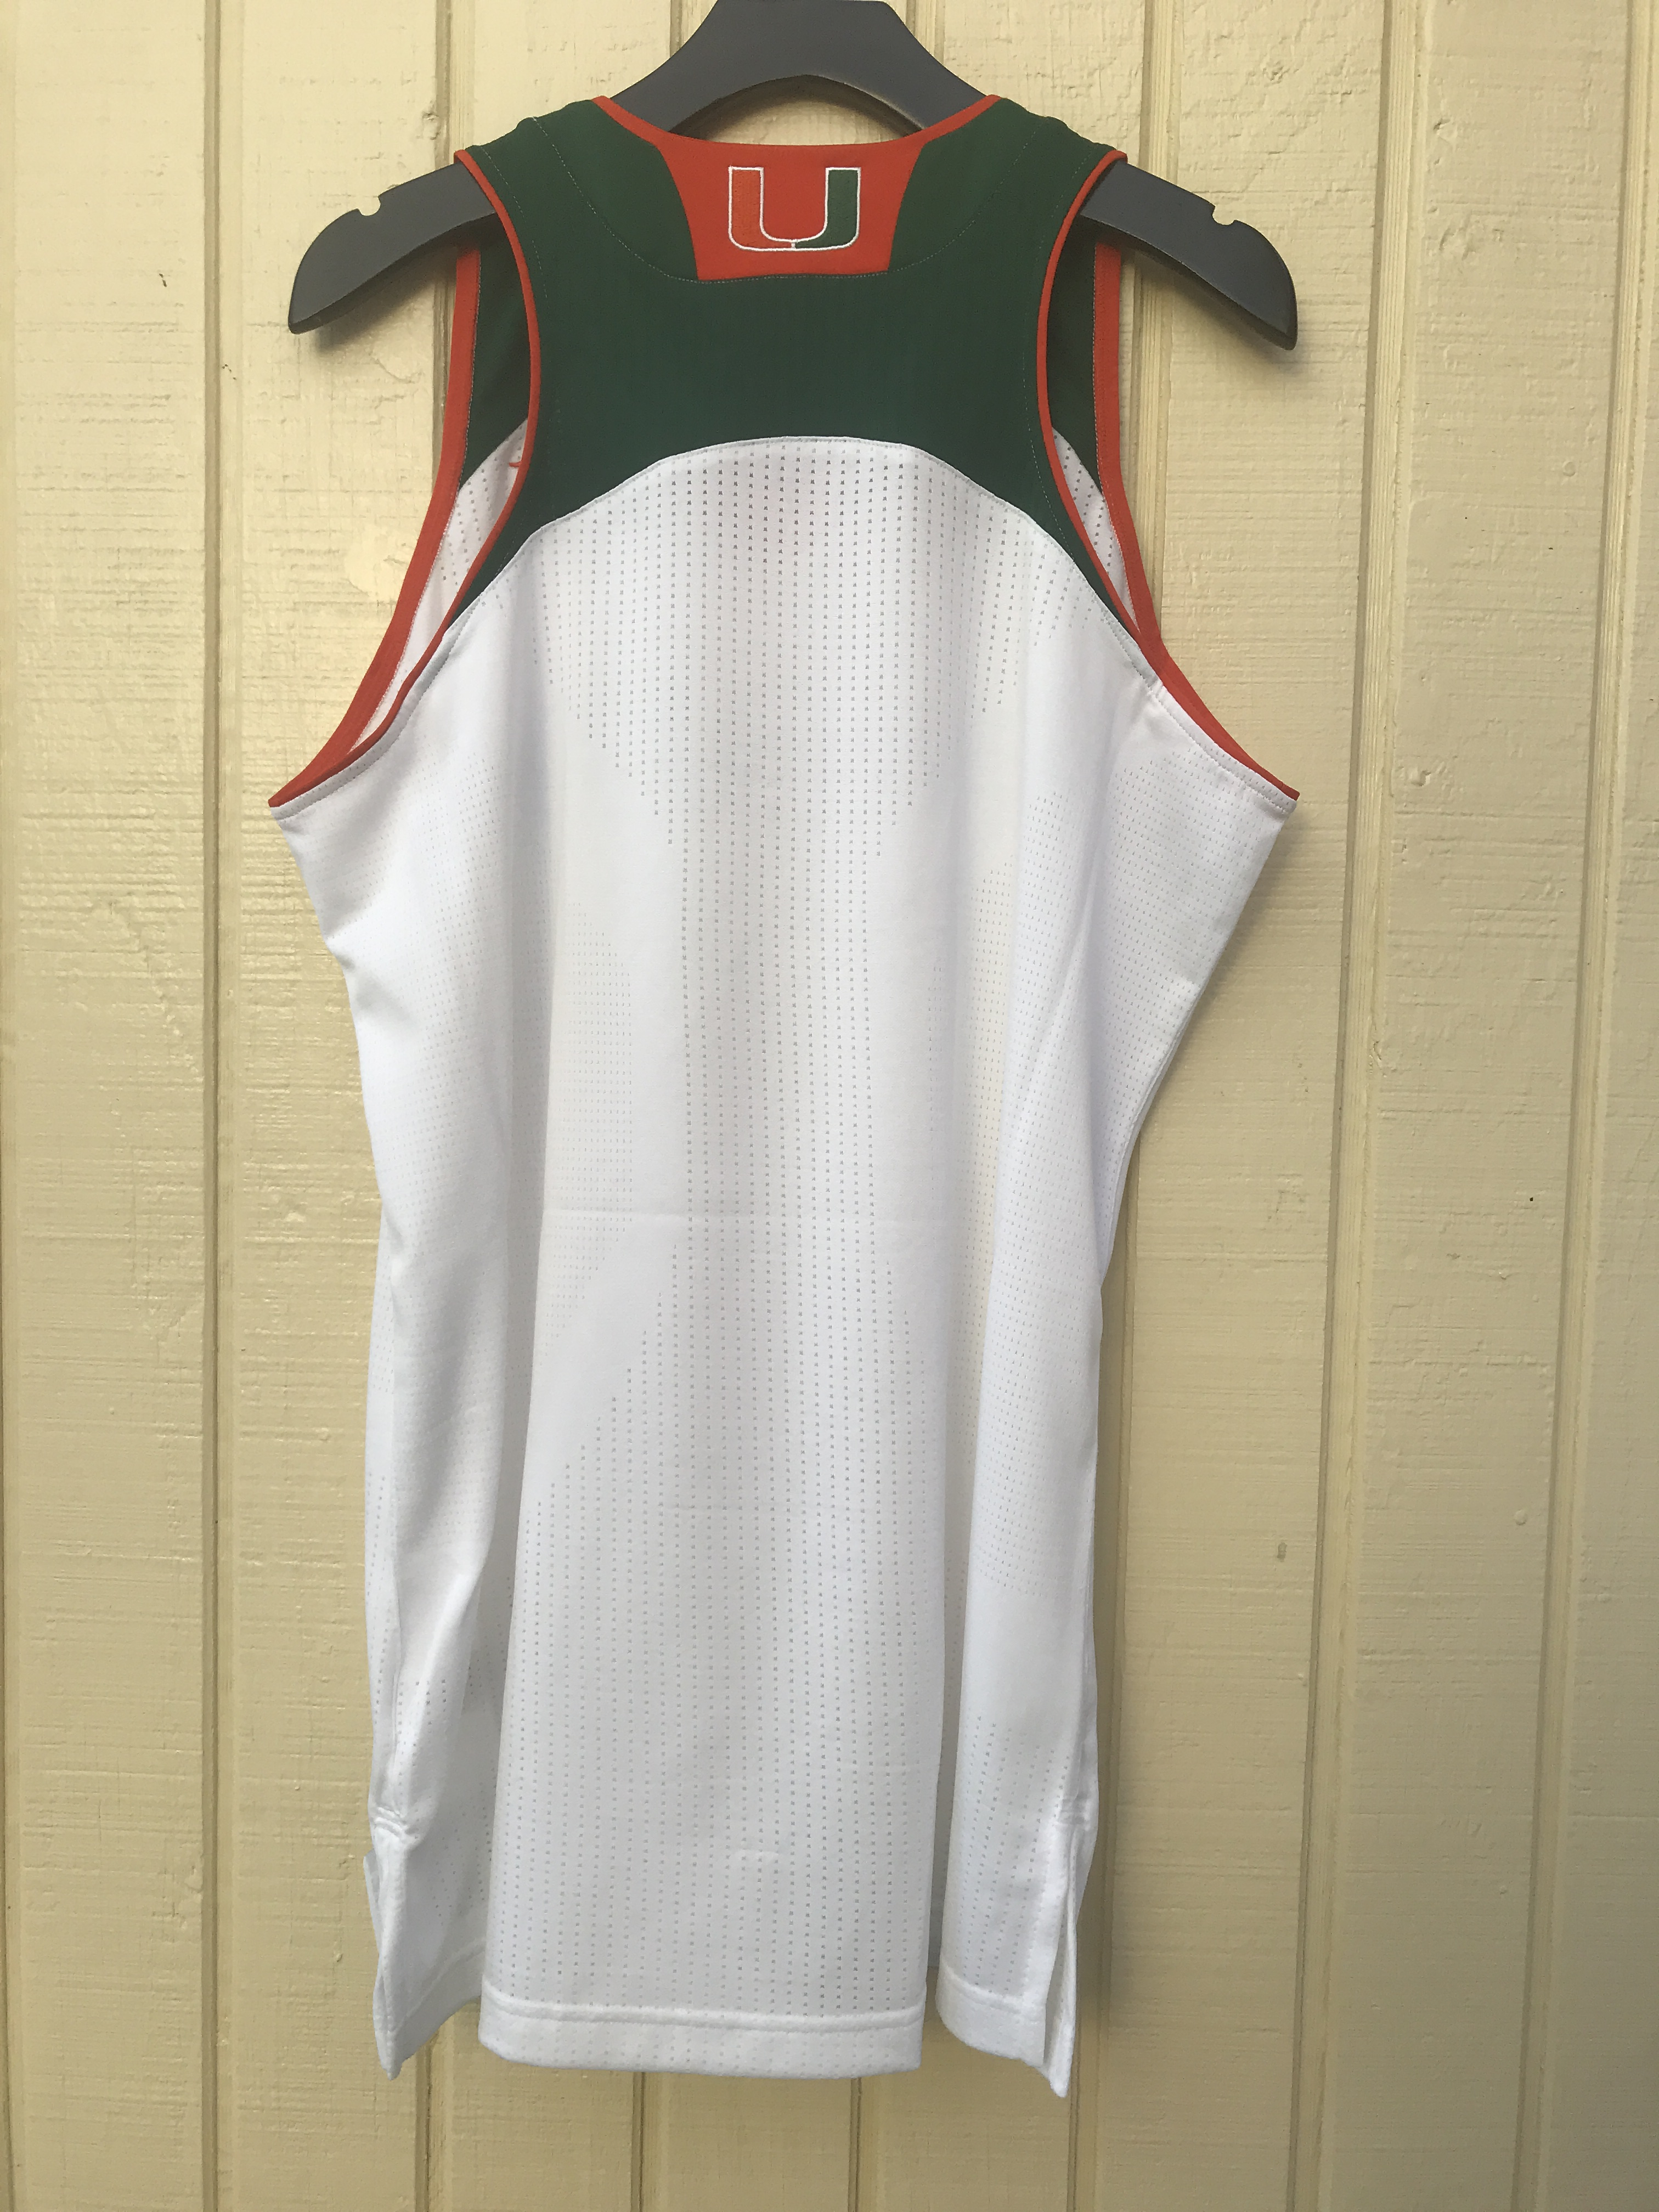 7a7c77661df The University of Miami adidas Blank Home NCAA Women s Basketball Jersey